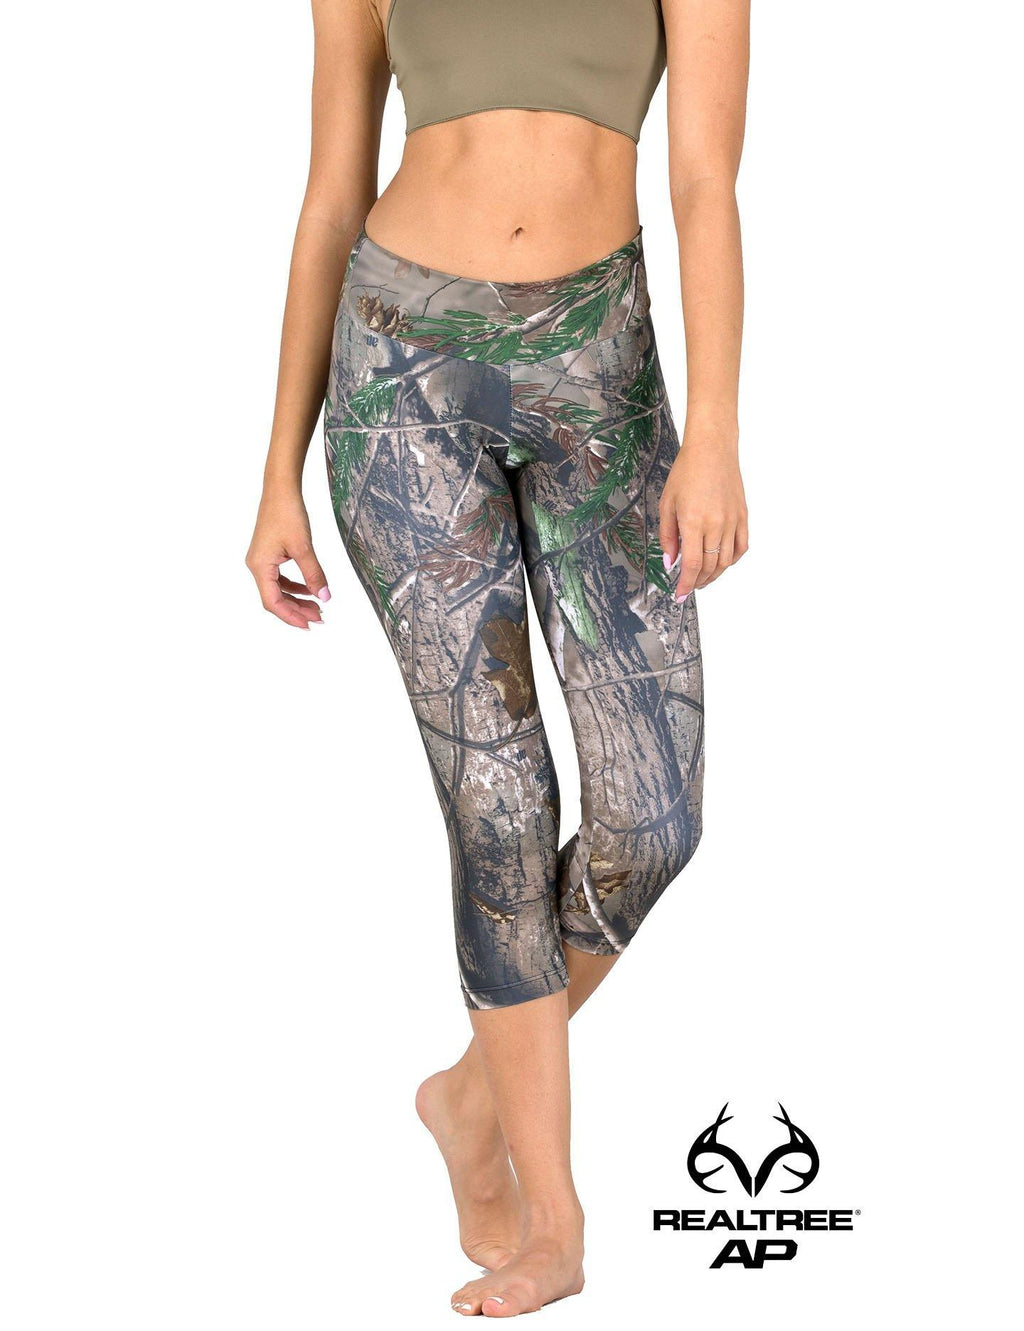 Apsara Leggings Low Waist Capri, Realtree AP